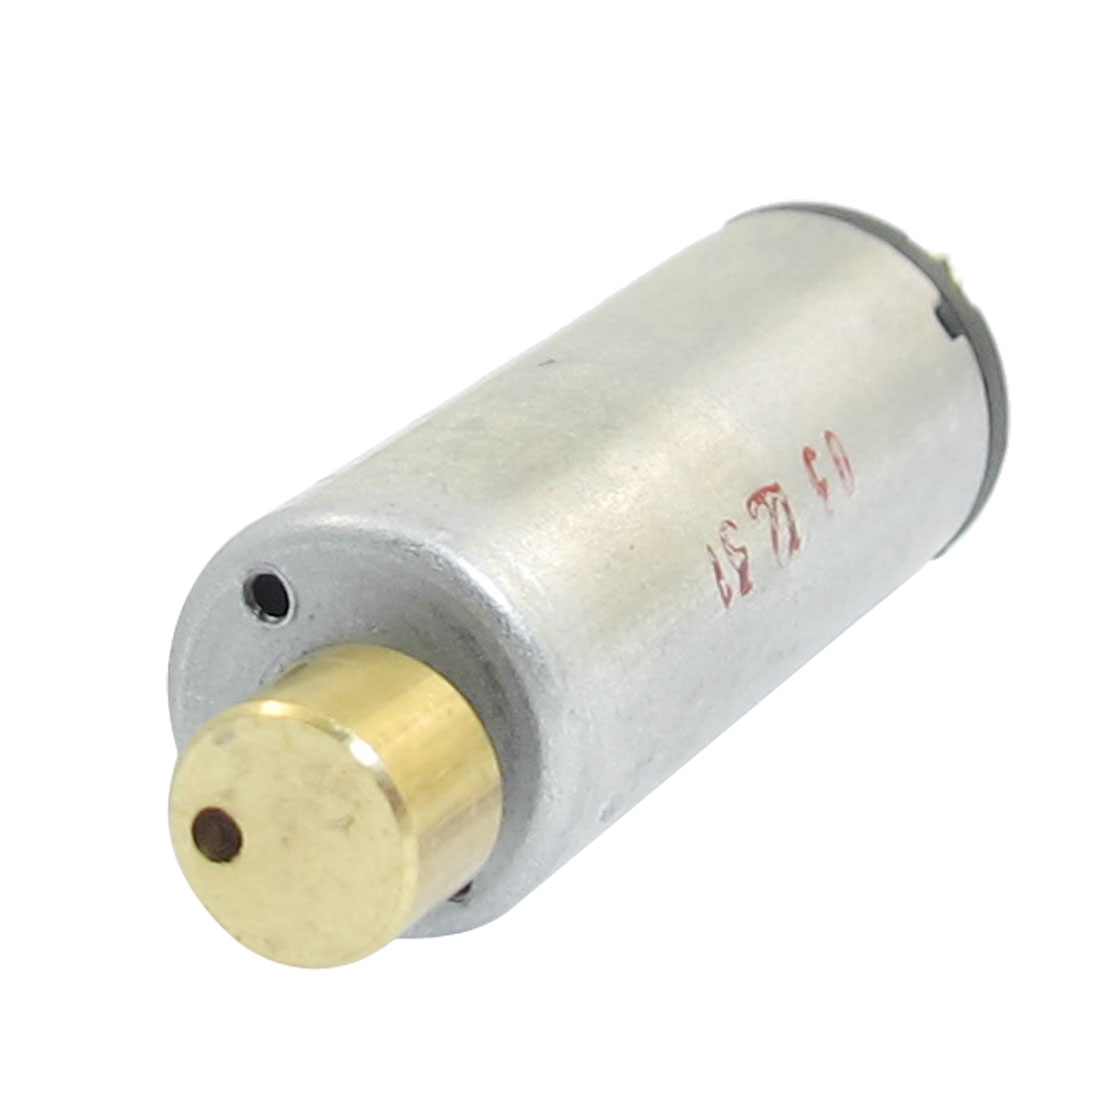 DC 1.5-6V 1750-7000RPM Output Speed Electric Mini Vibration Motor